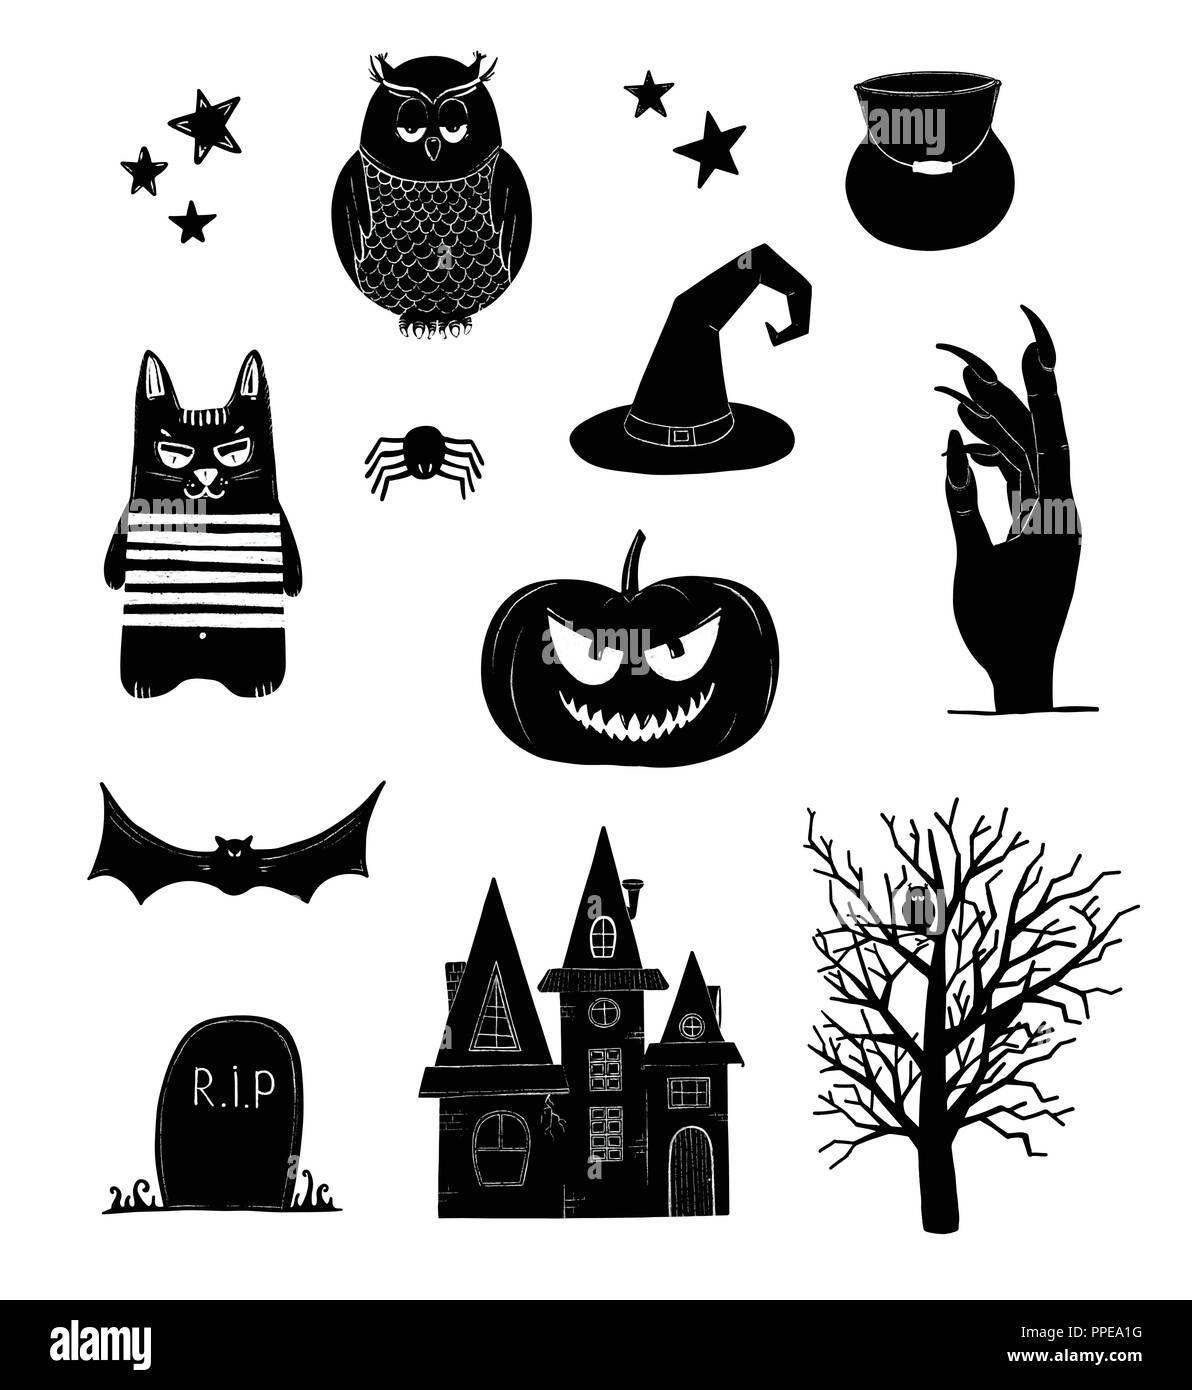 Halloween Vector Black And White.Halloween Vector Clip Art Black And White Pumpkin Owl Witch Bat